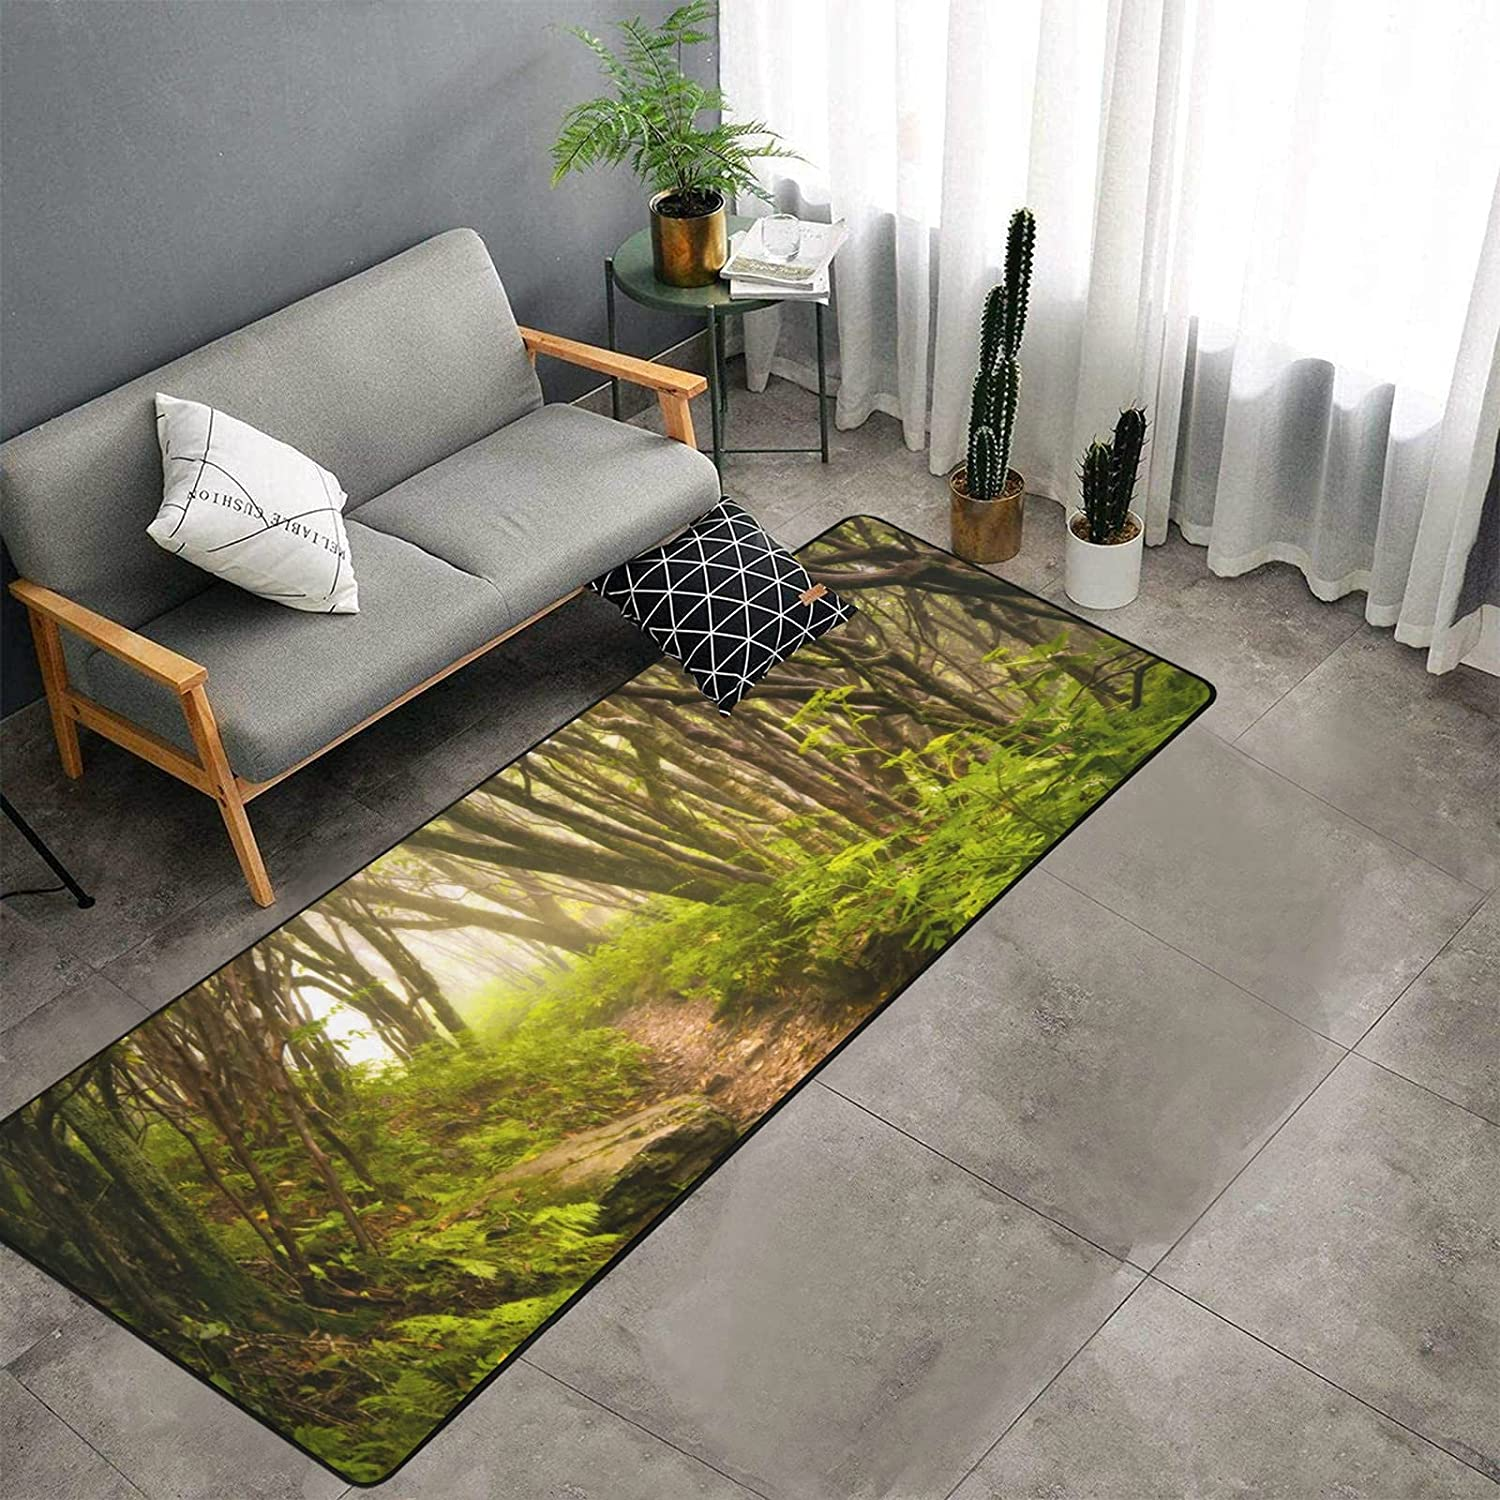 Beautiful Scenery in The Mountain Forest K Choice Runner Ranking TOP3 Kitchen of Rug